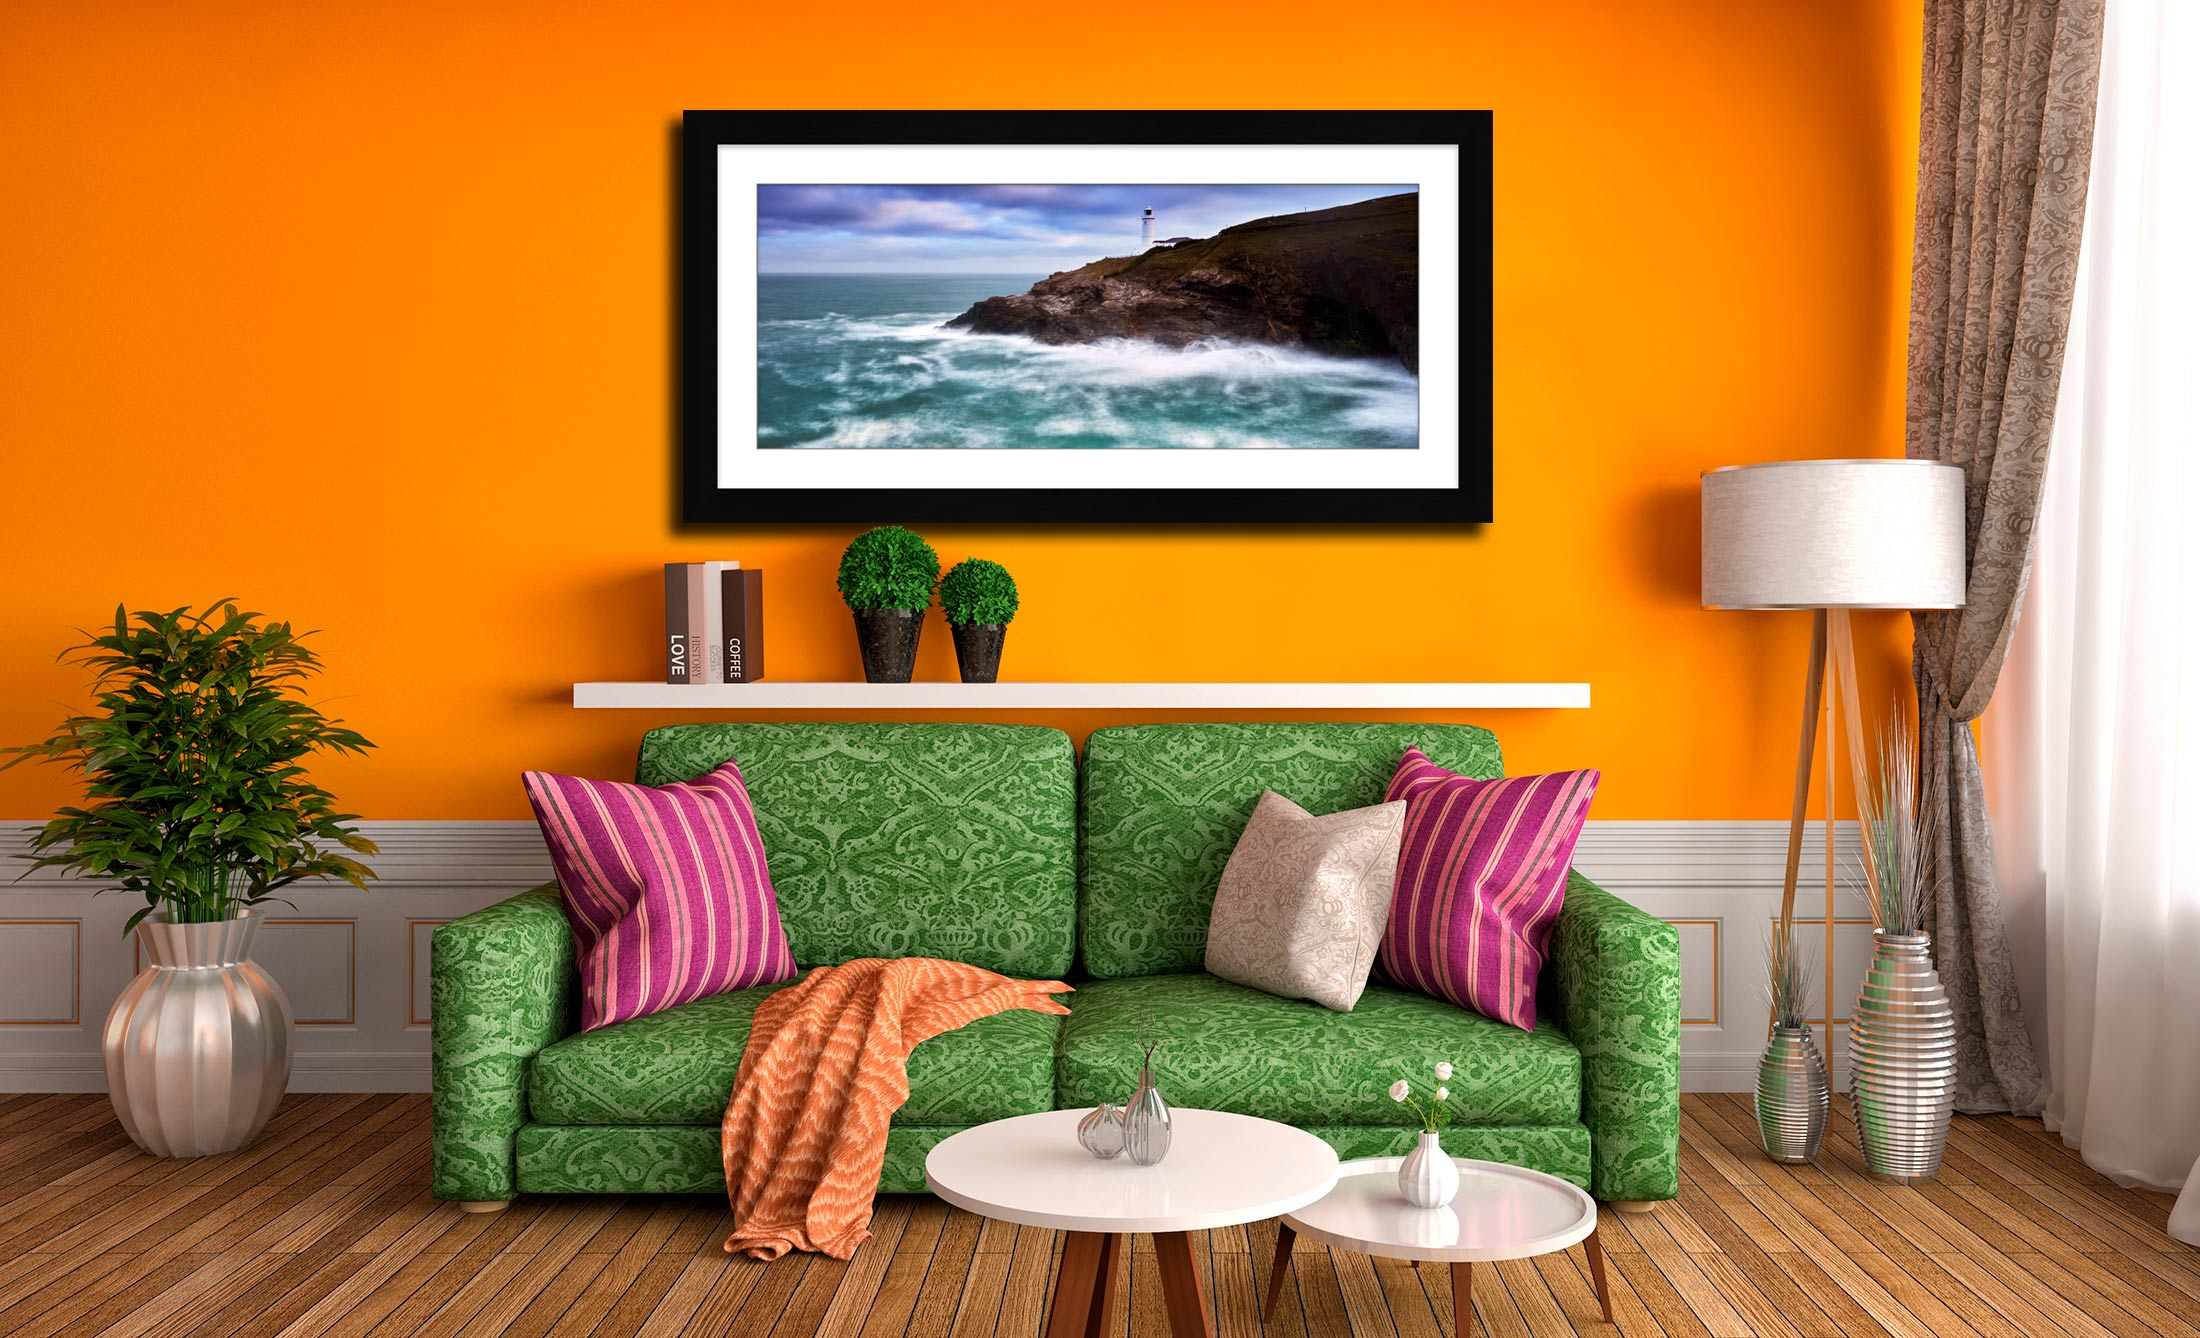 Stinking Cove and Trevose Head Lighthouse - Framed Print with Mount on Wall